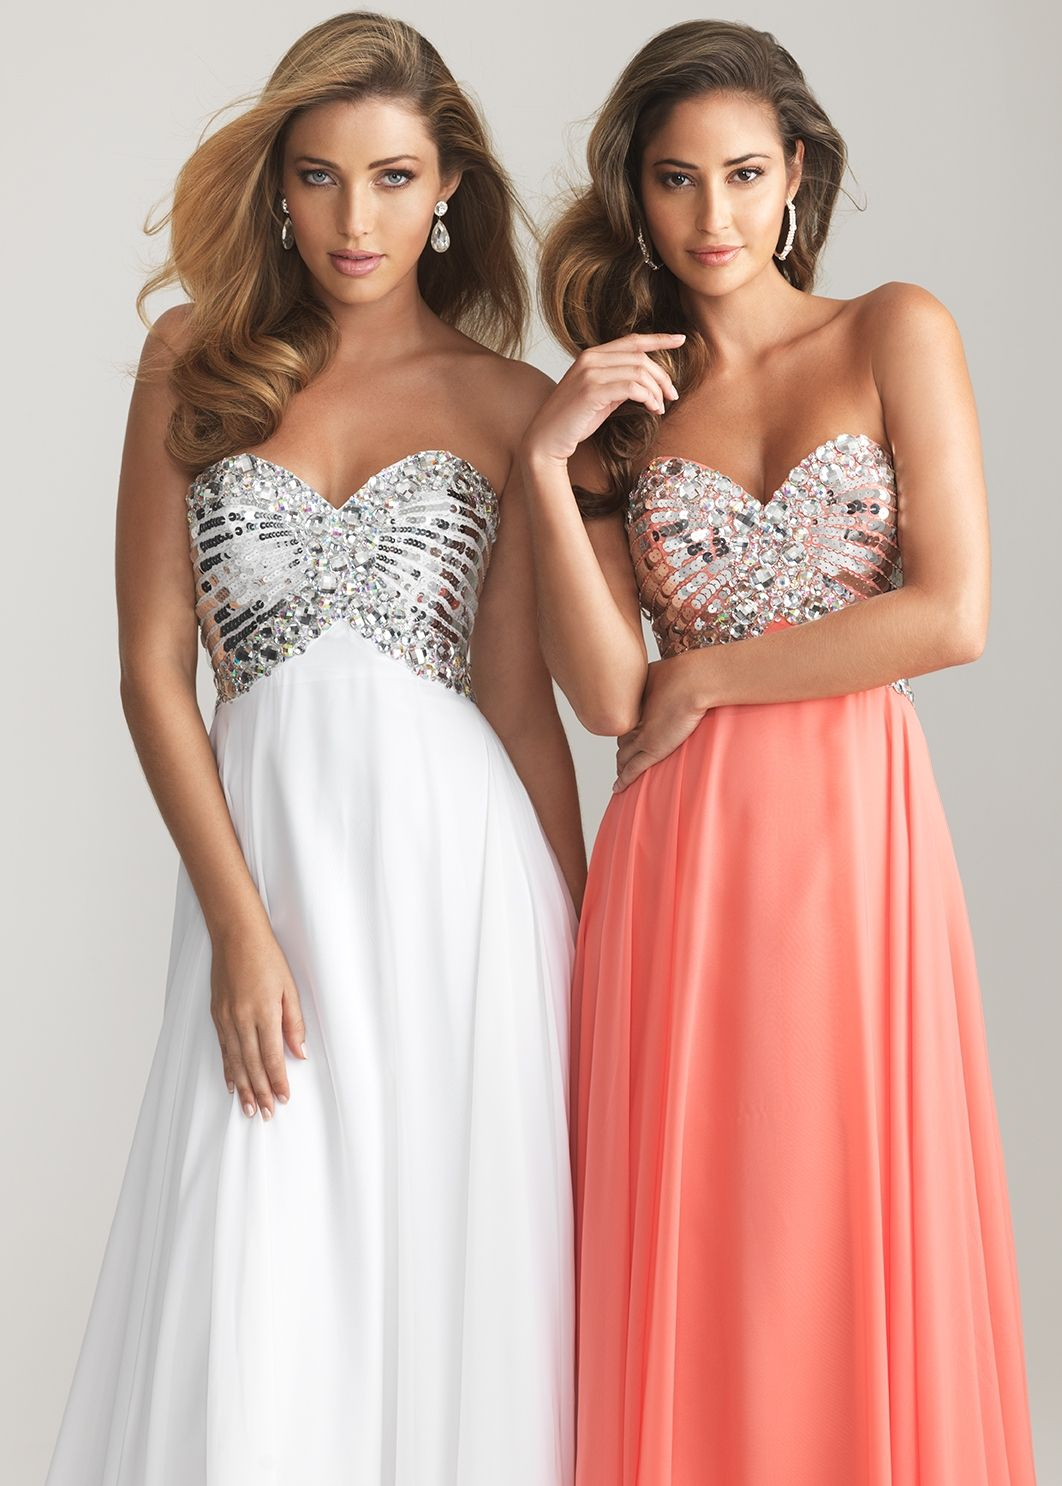 White and coral sequin prom dress with a sweetheart neckline night